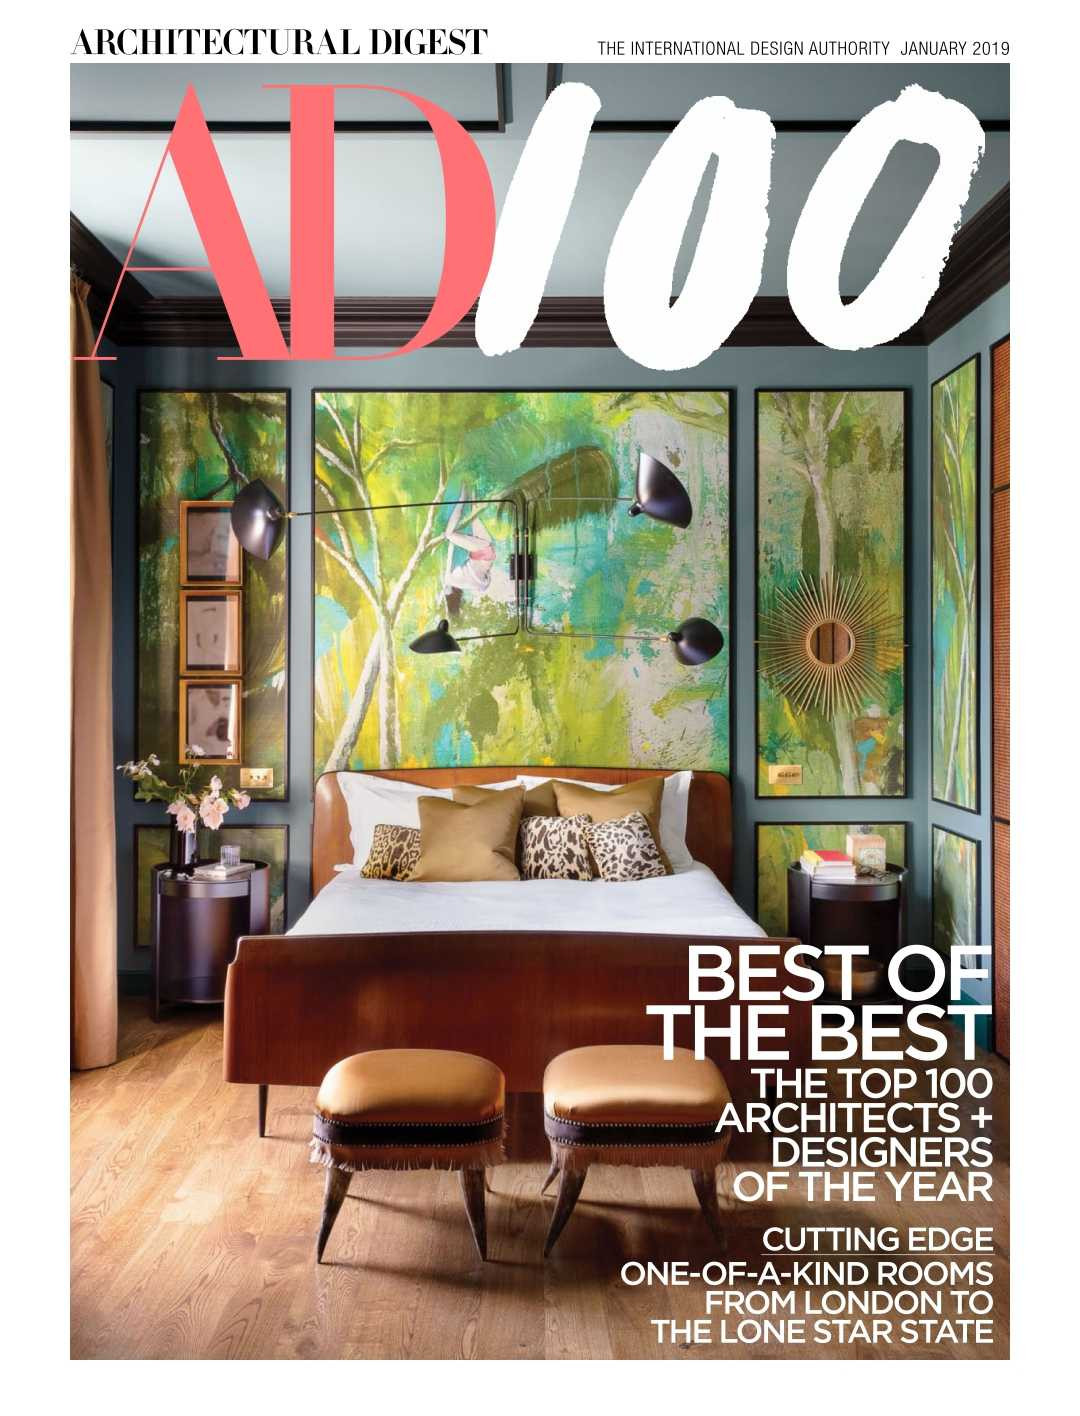 Arch-digest-cover-jan2019